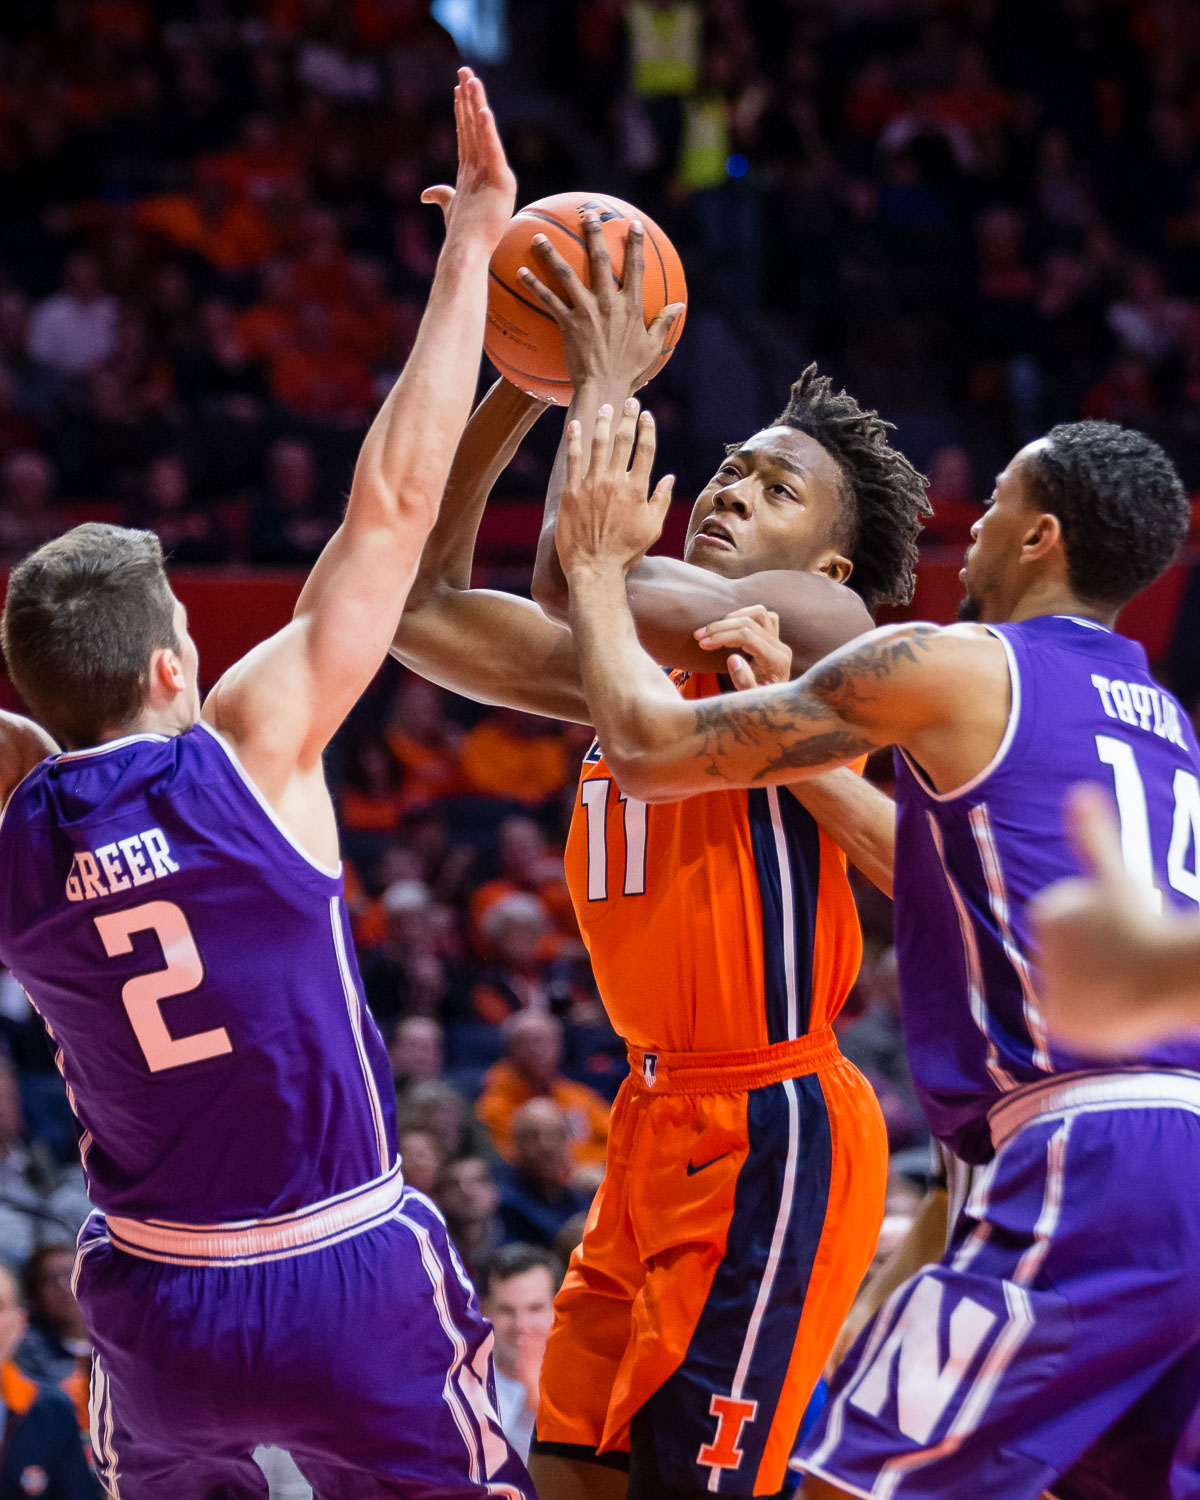 Illinois guard Ayo Dosunmu (11) draws contact on his way to the basket during the game against Northwestern at State Farm Center on Sunday, March 3, 2019. The Illini won 81-76.